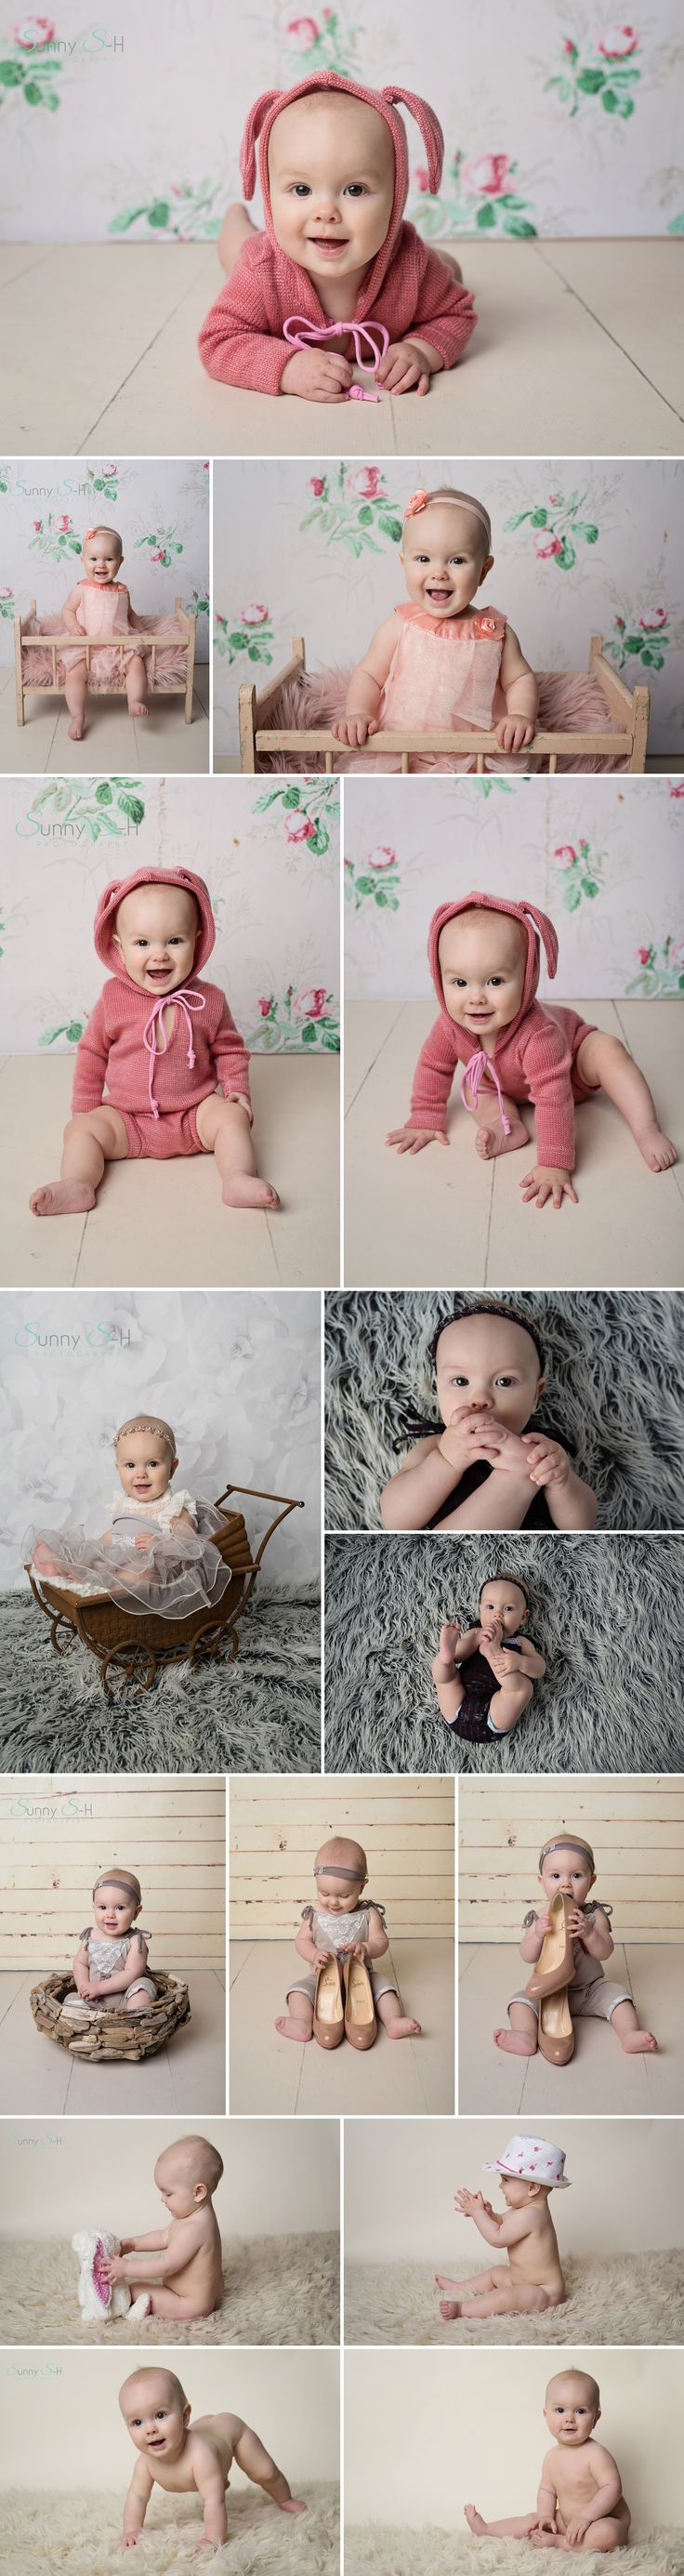 7 month old Erika and her studio sitting stage photo shoot.  Sunny S-H Photography